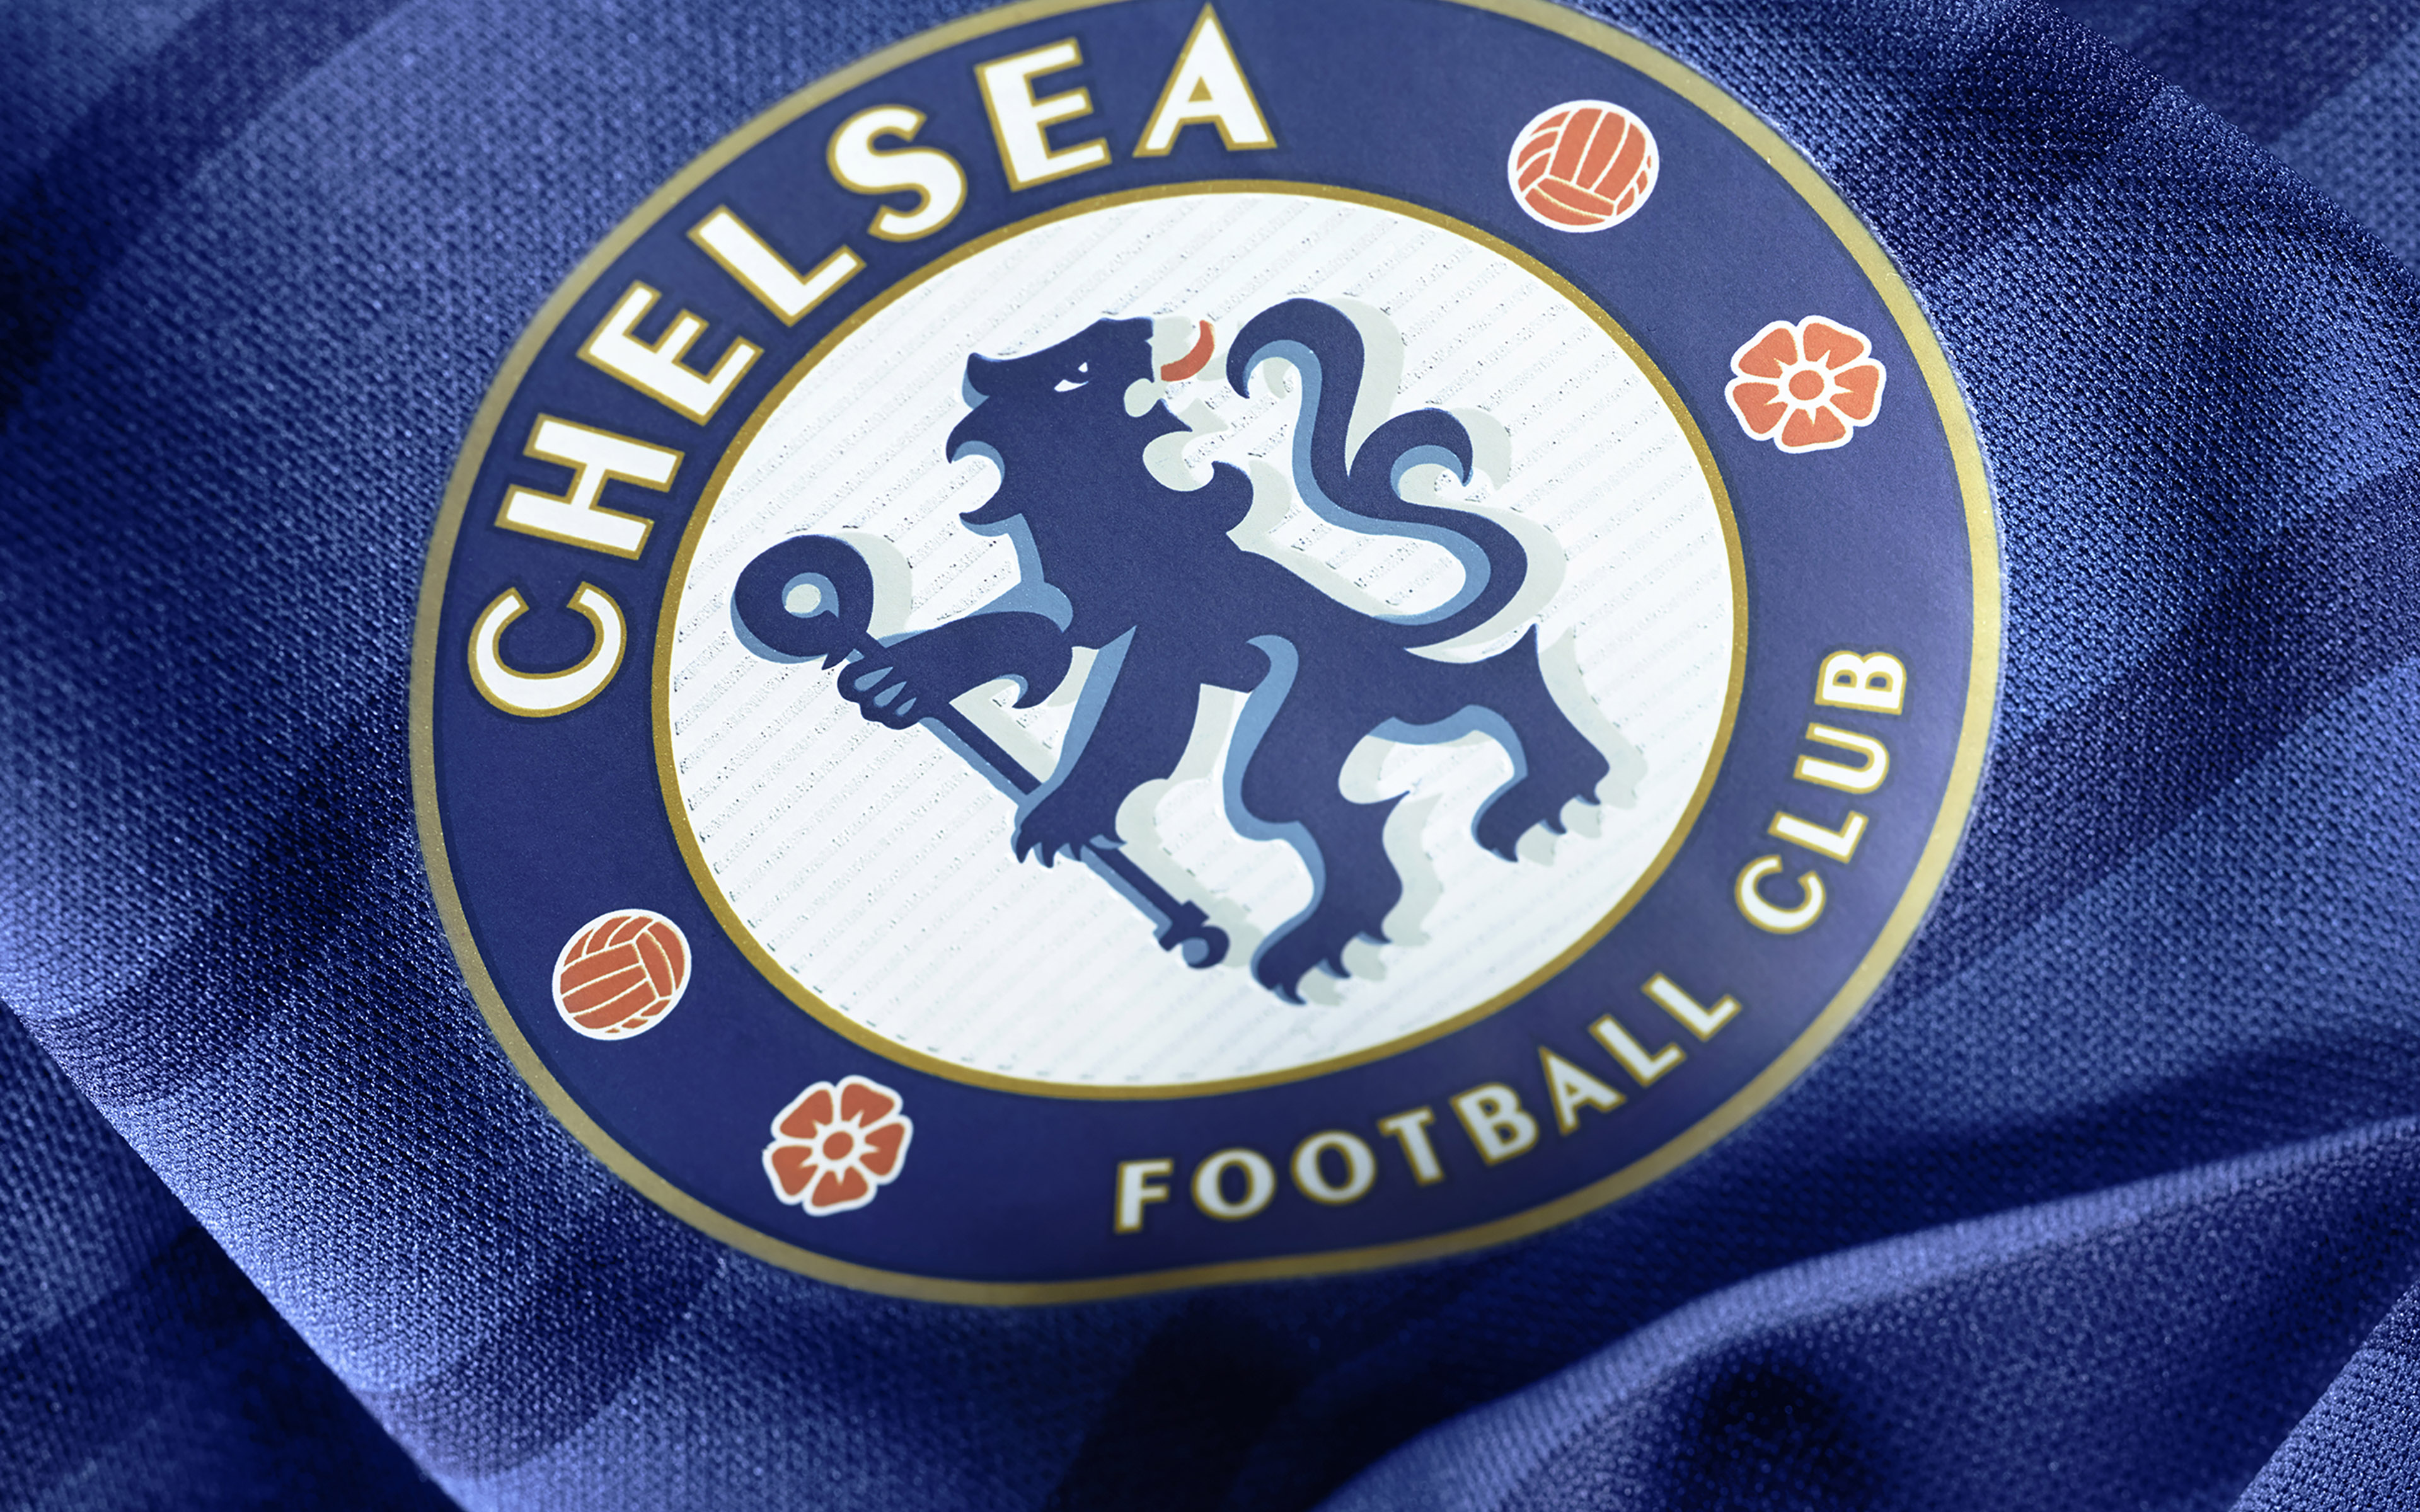 Cute Animal Soccer Wallpaper Pictures Ag42 Chelsea Emblem Logo Epl Soccer Papers Co